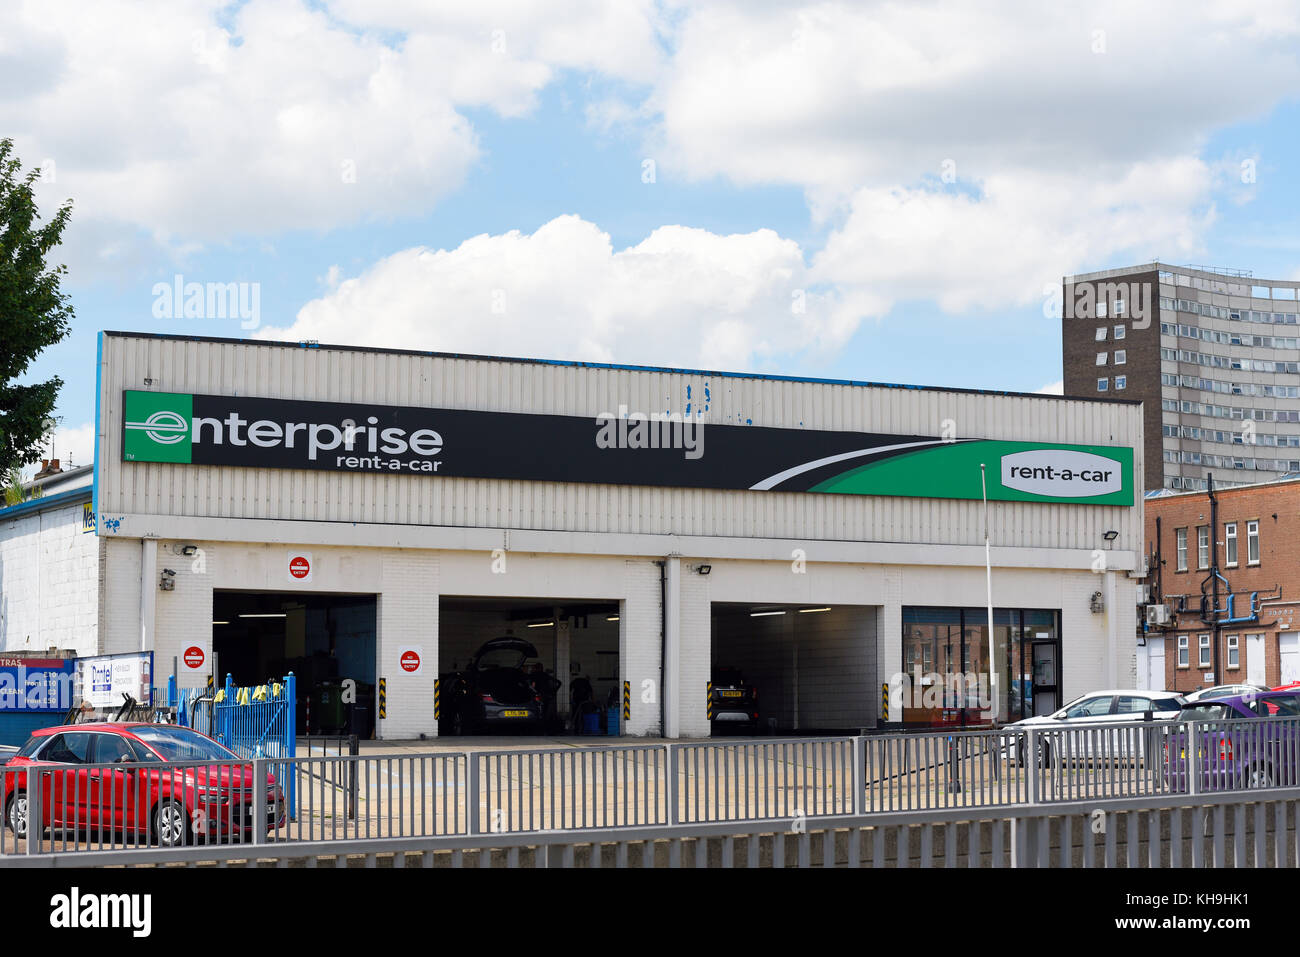 Enterprise Car Hire In Southend On Sea